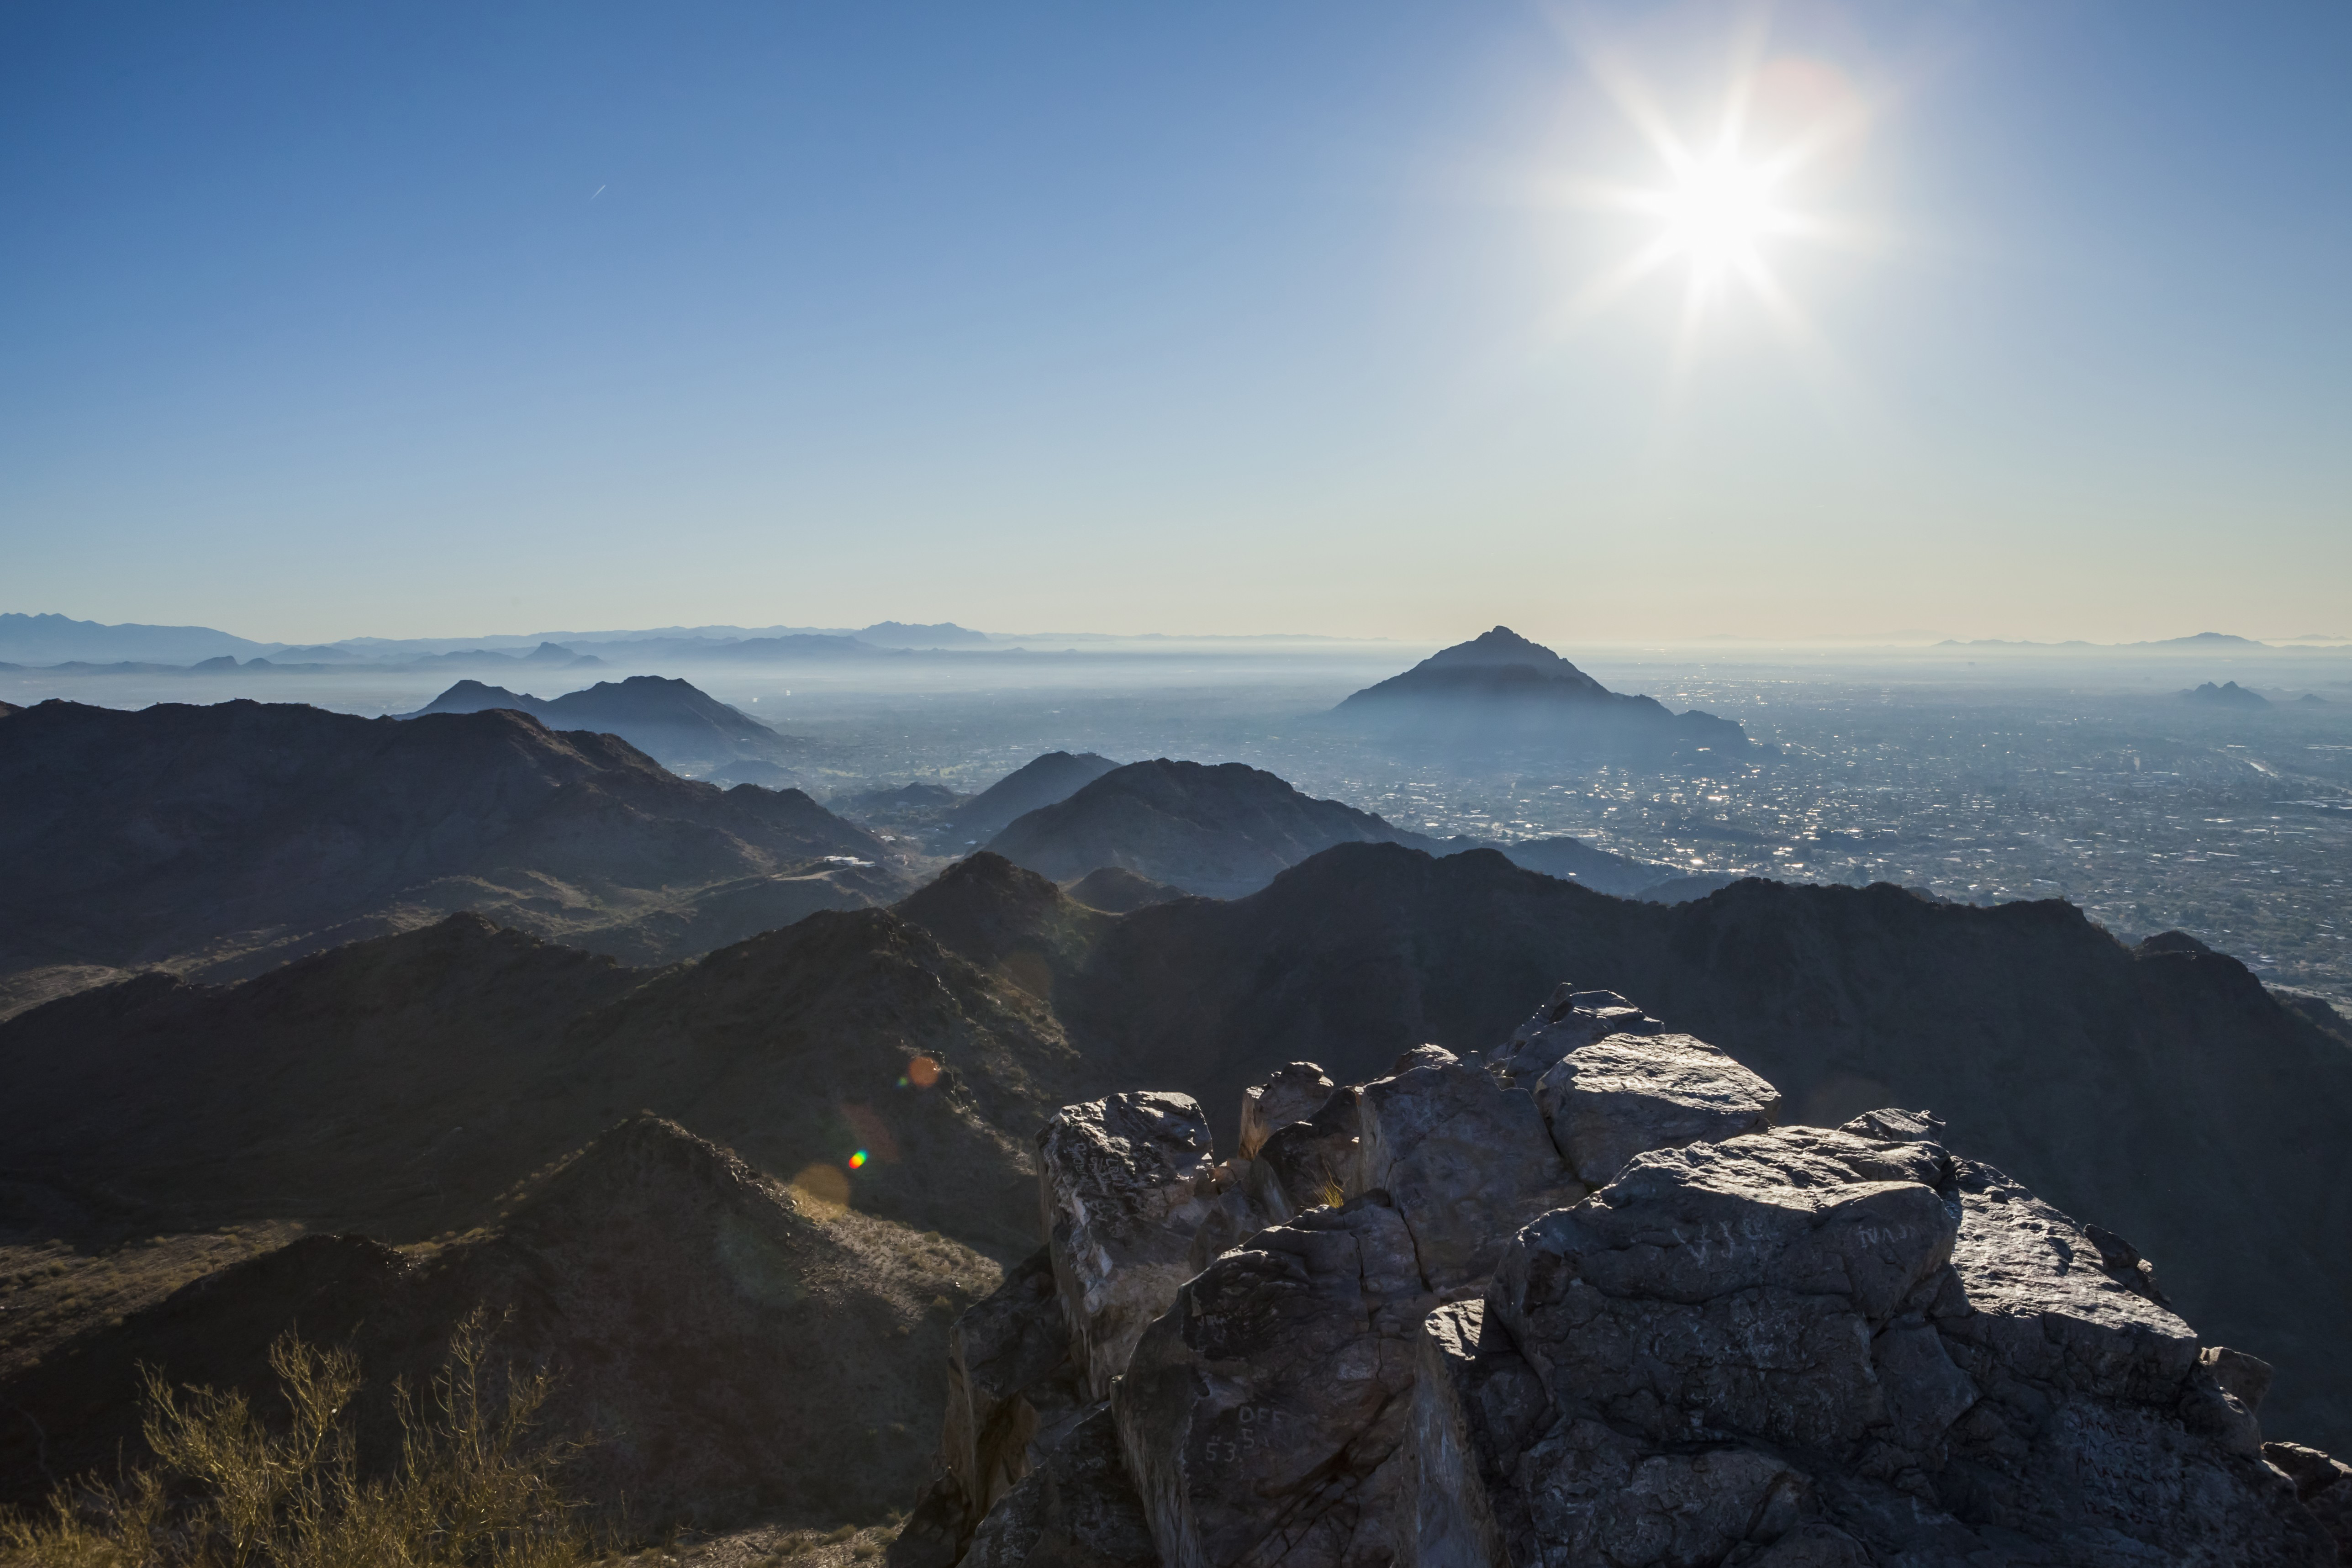 Morning view from the top of Piestawa Peak looking Southeast over Scottsdale, Paradise Valley, and Phoenix, Ariz.